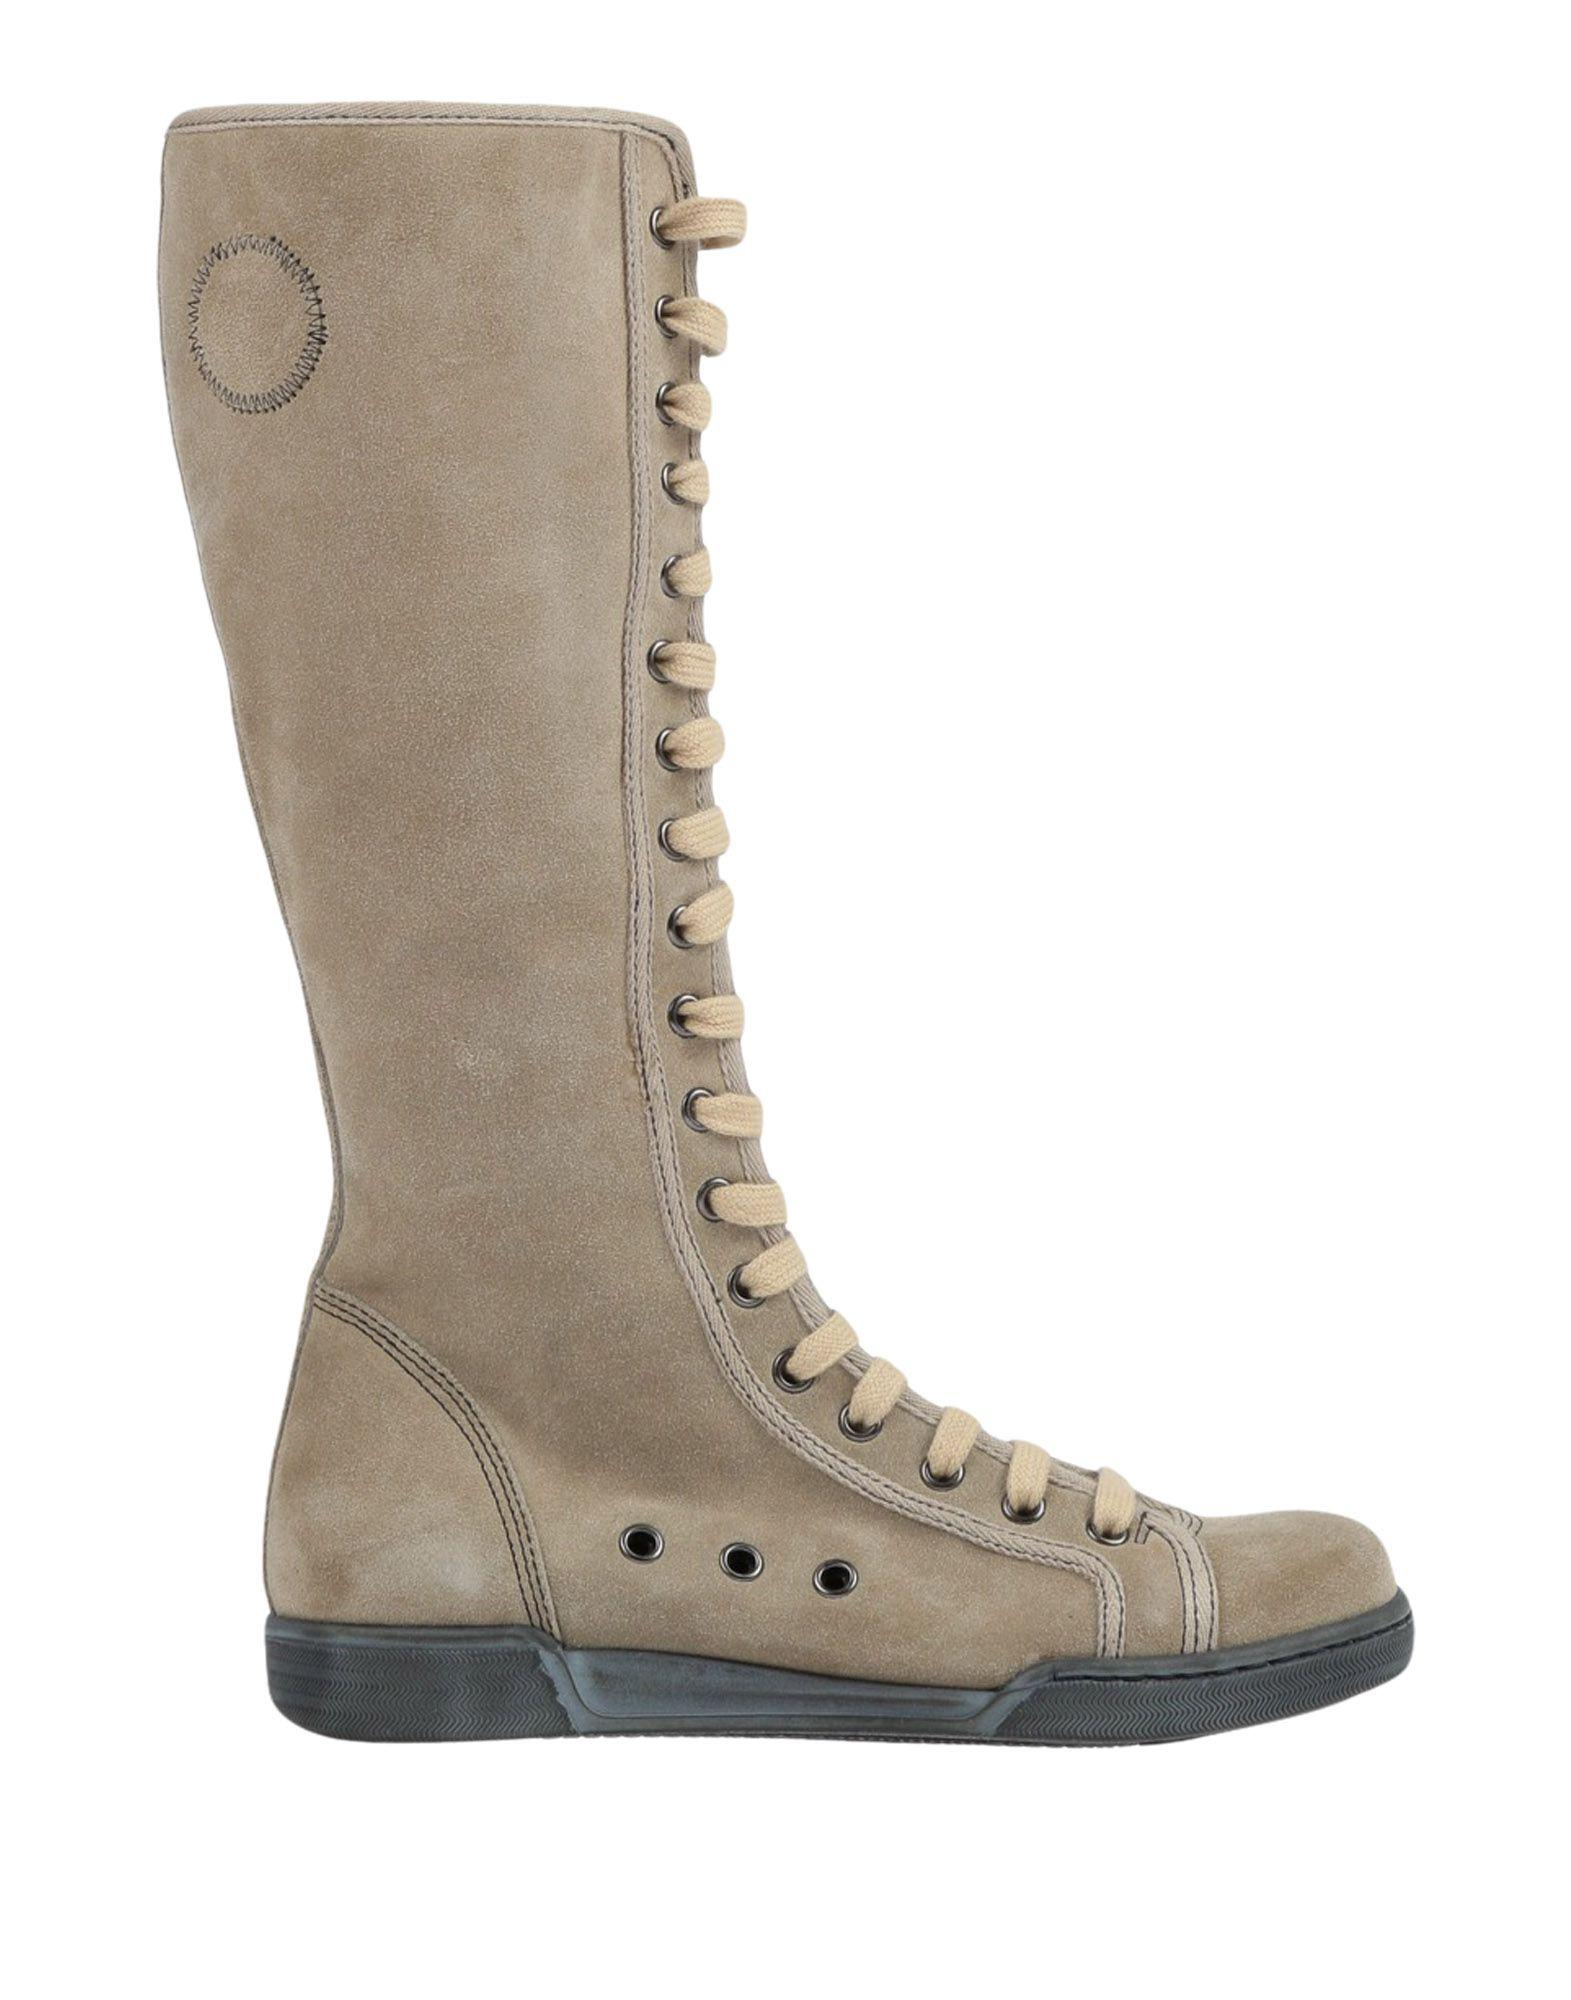 Marc By Marc Jacobs Boots In Khaki